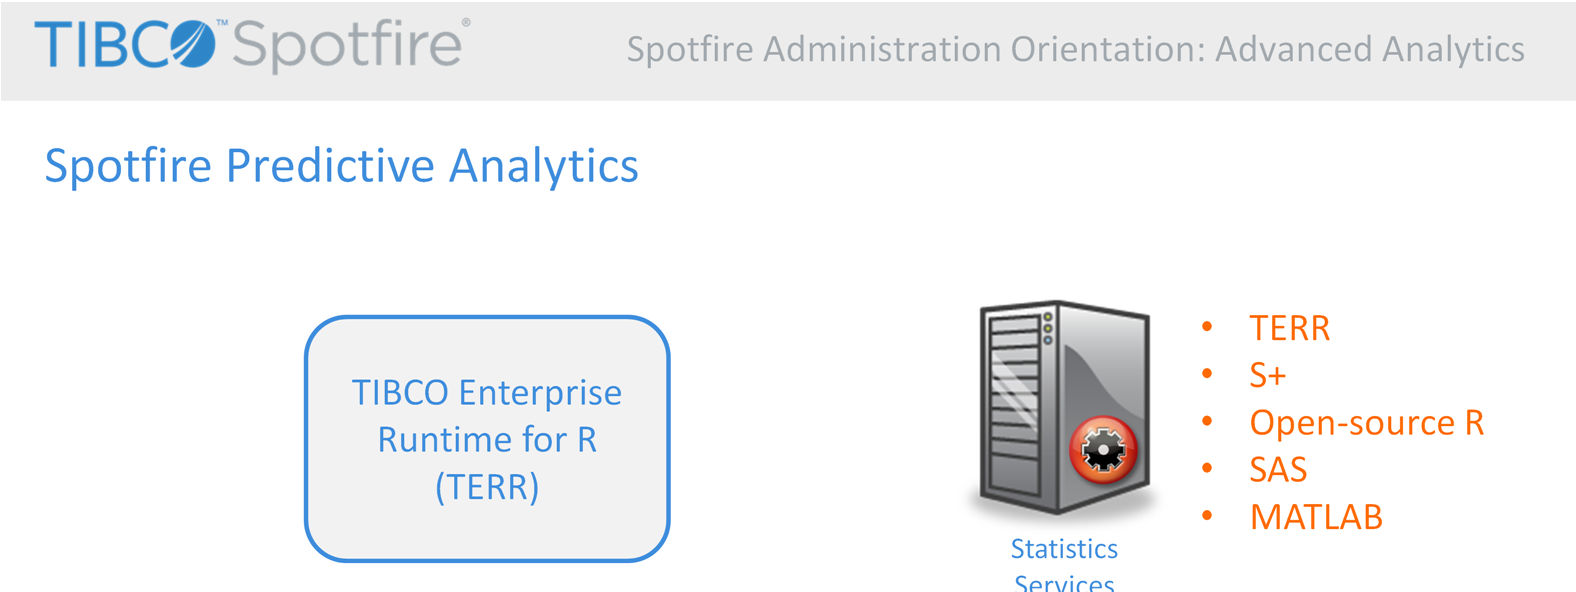 Spotfire Predictive Analytics consists of two technologies: TIBCO Enterprise Runtime for R, or TERR, and TIBCO Spotfire Statistics Services.